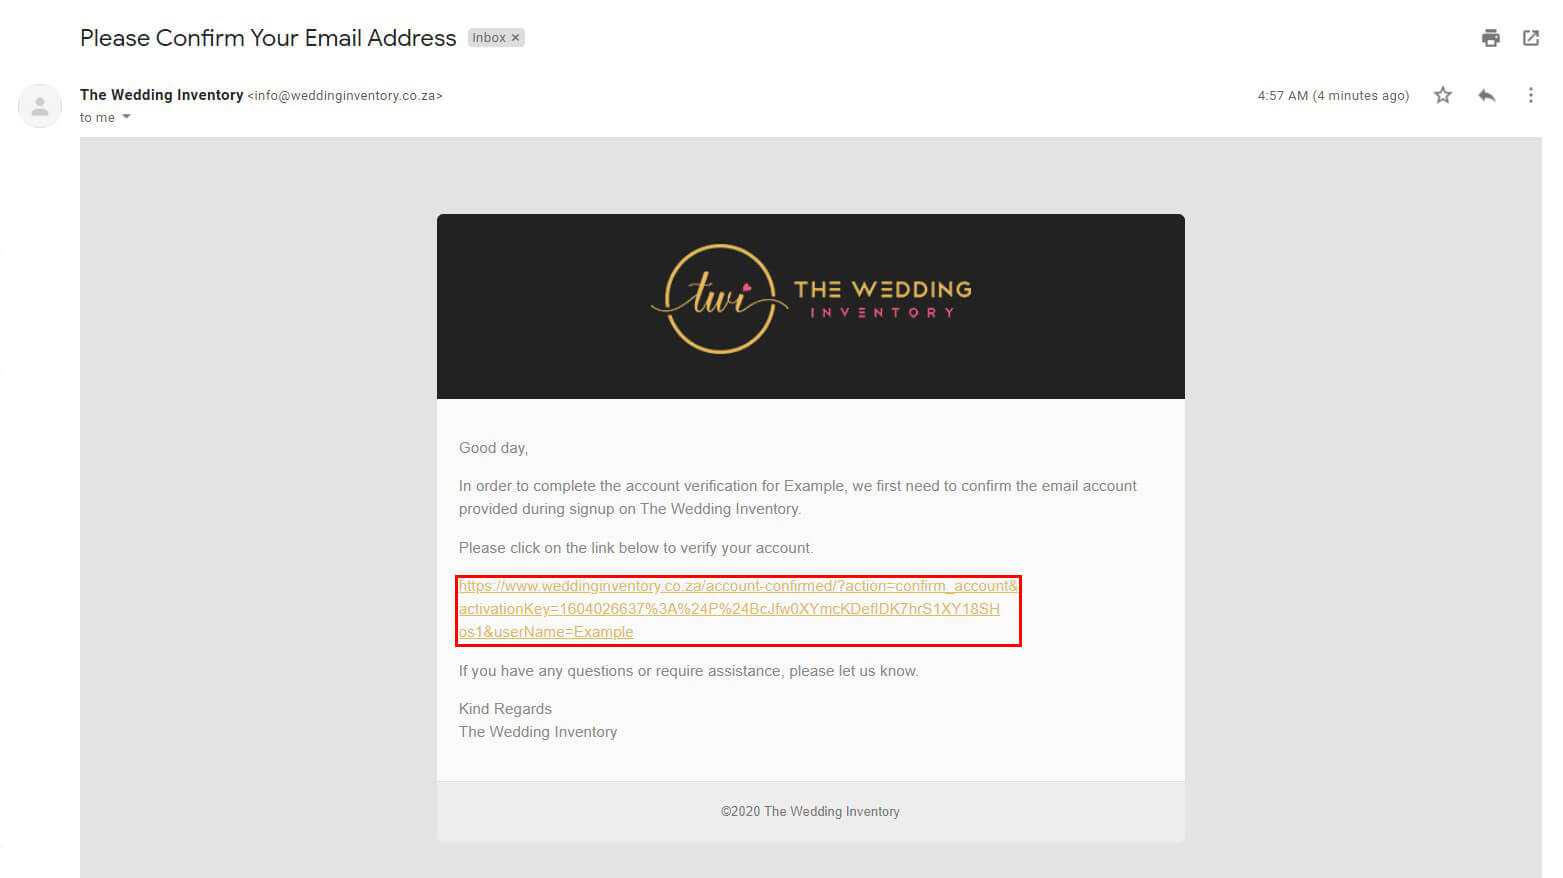 The Wedding Inventory Confirming Email